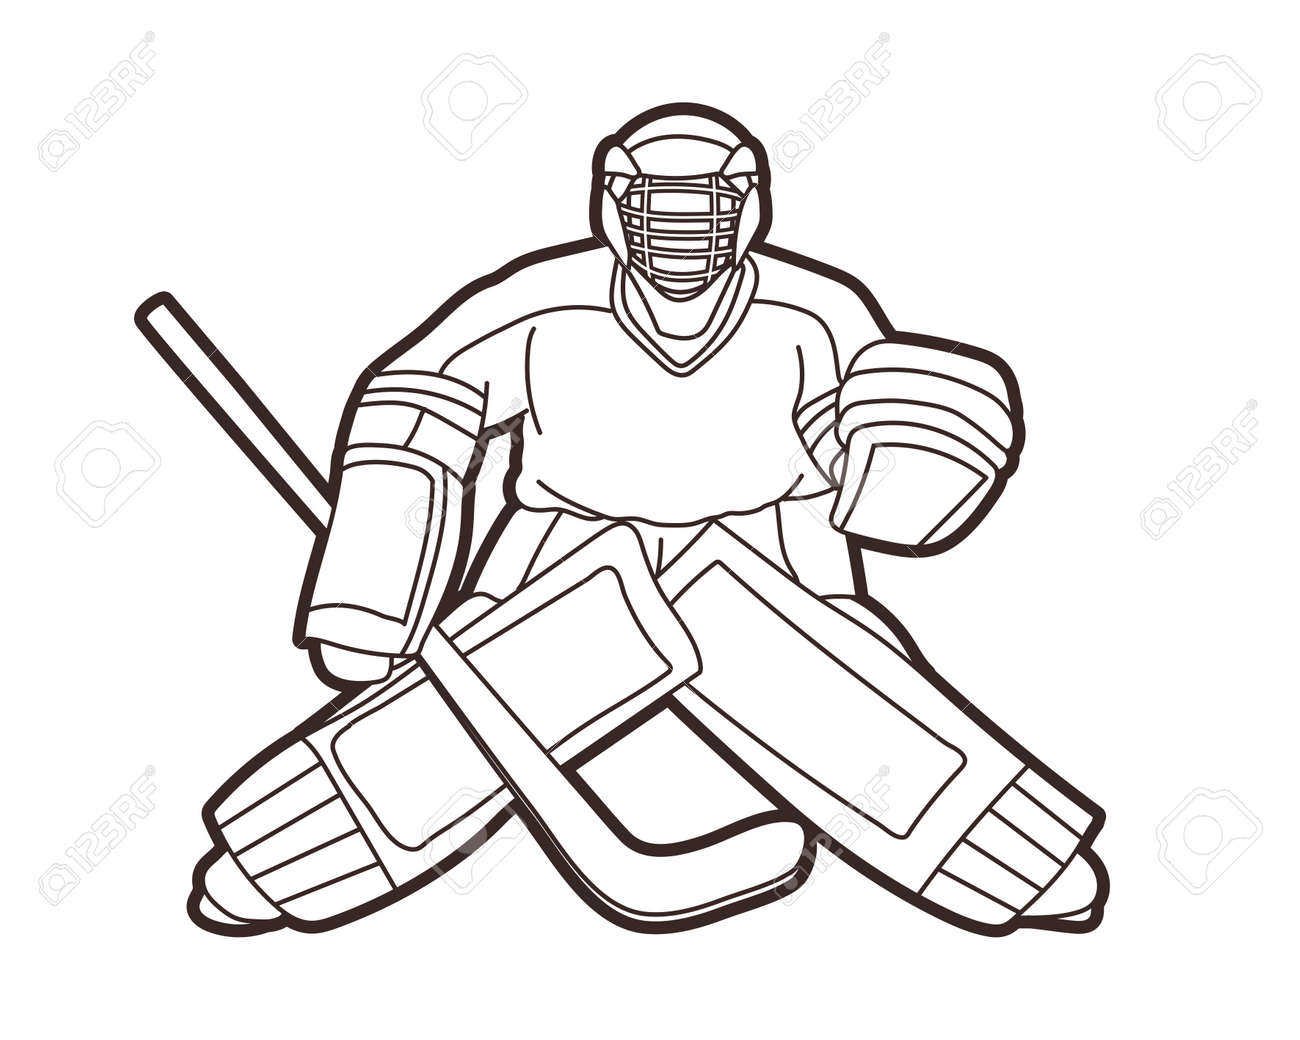 Ice Hockey Goalie Sport Player Cartoon Action Graphic Vector Royalty Free Cliparts Vectors And Stock Illustration Image 134459848